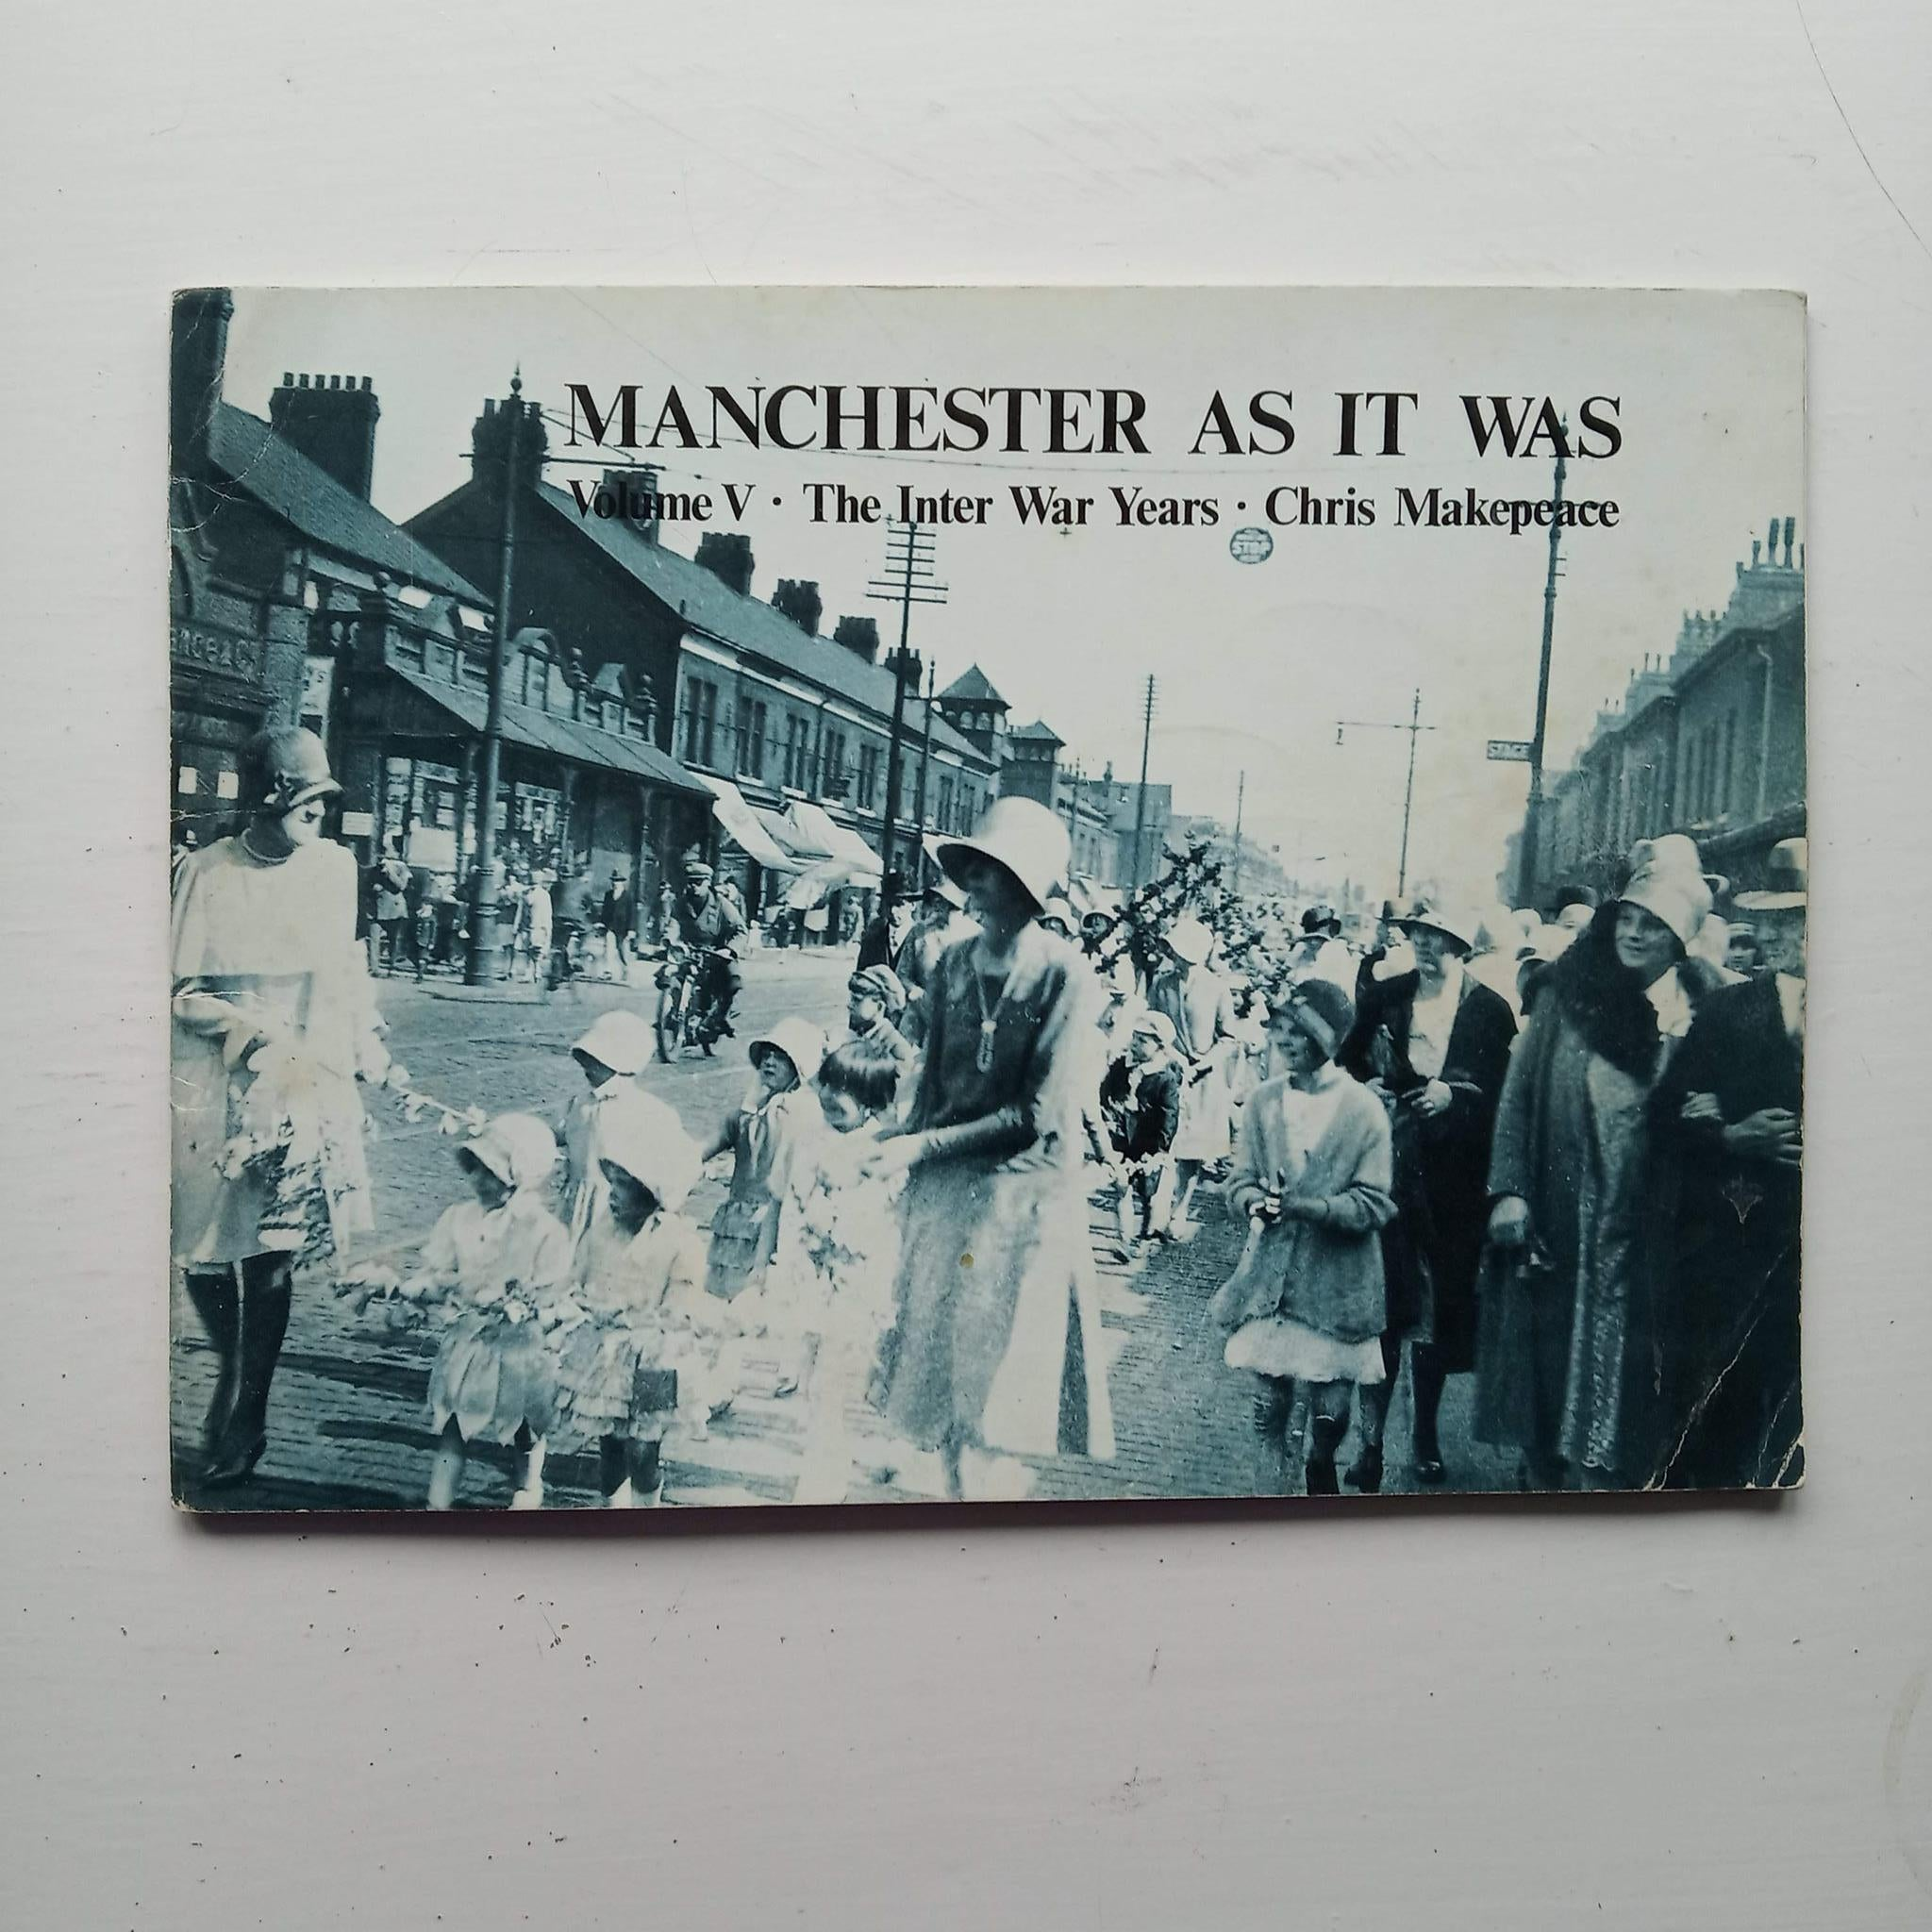 Manchester as it was Vol 5 by Chris Makepeace